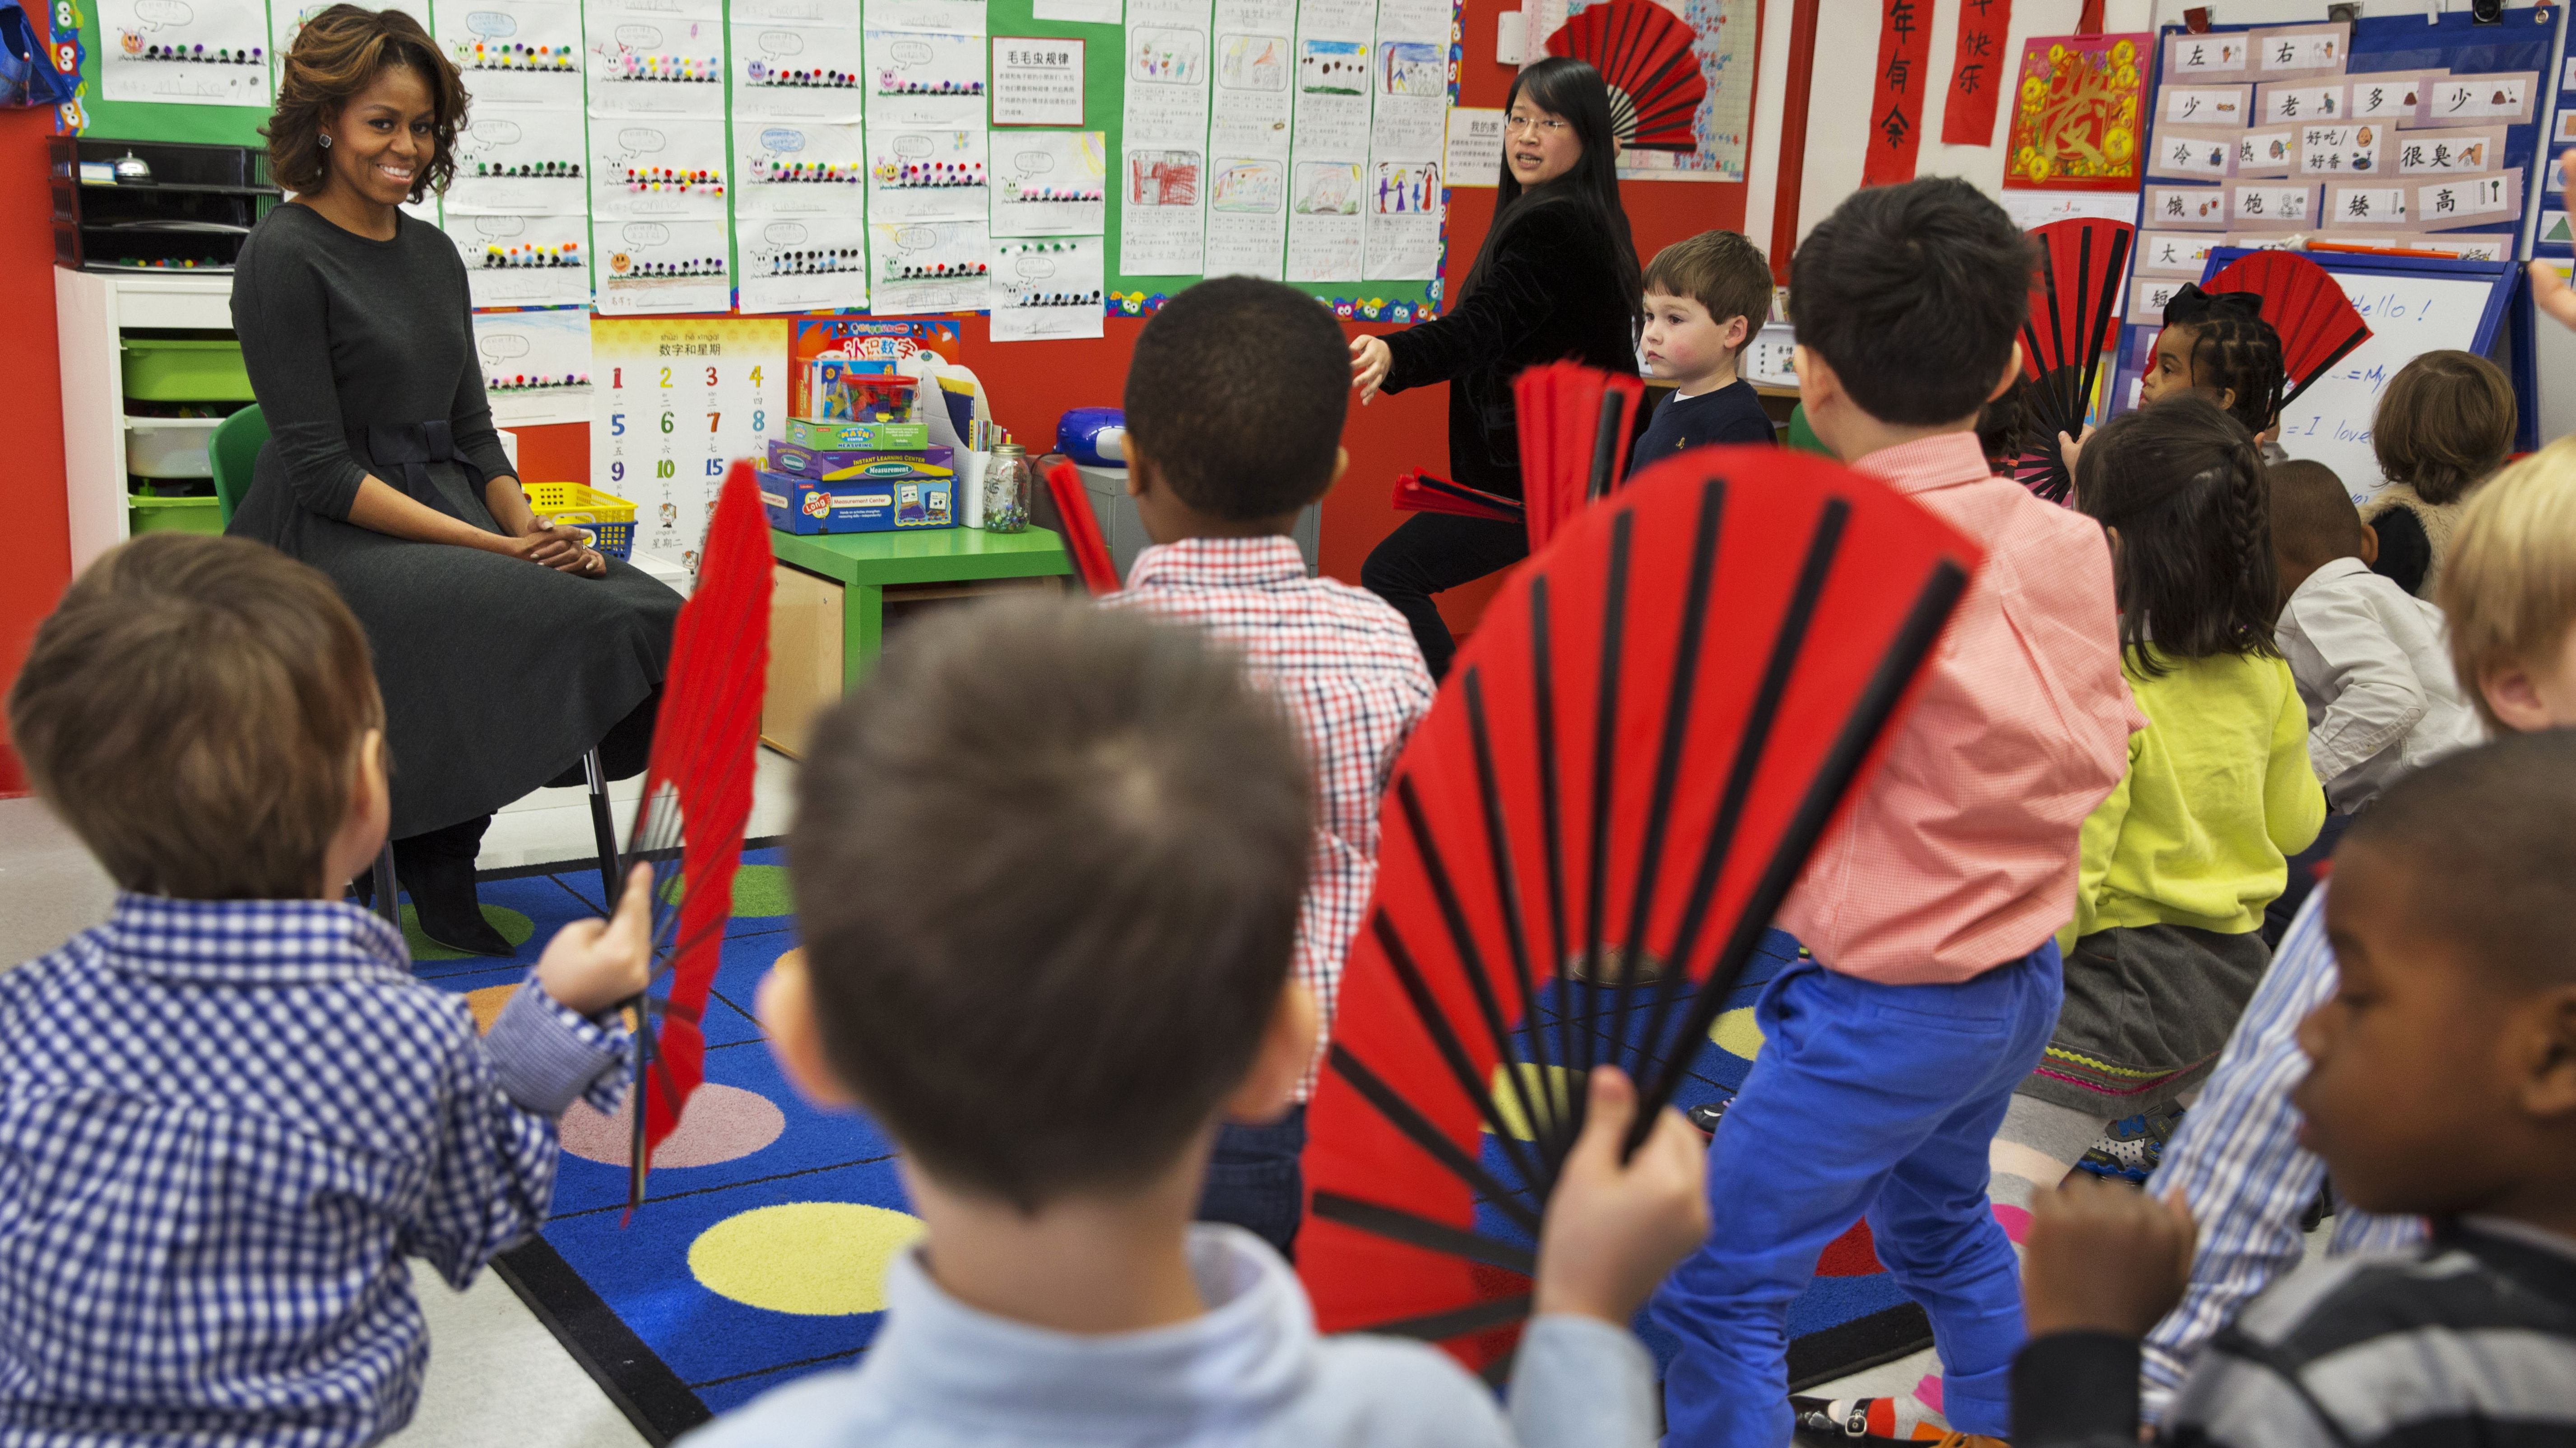 First lady Michelle Obama watches as pre-Kindergarten students perform a fan dance at Yu Ying Public Charter School in Washington, Tuesday, March 4, 2014. Later in March the first lady is expected to take a trip to China along with her daughters and mother. (AP Photo/Jacquelyn Martin)